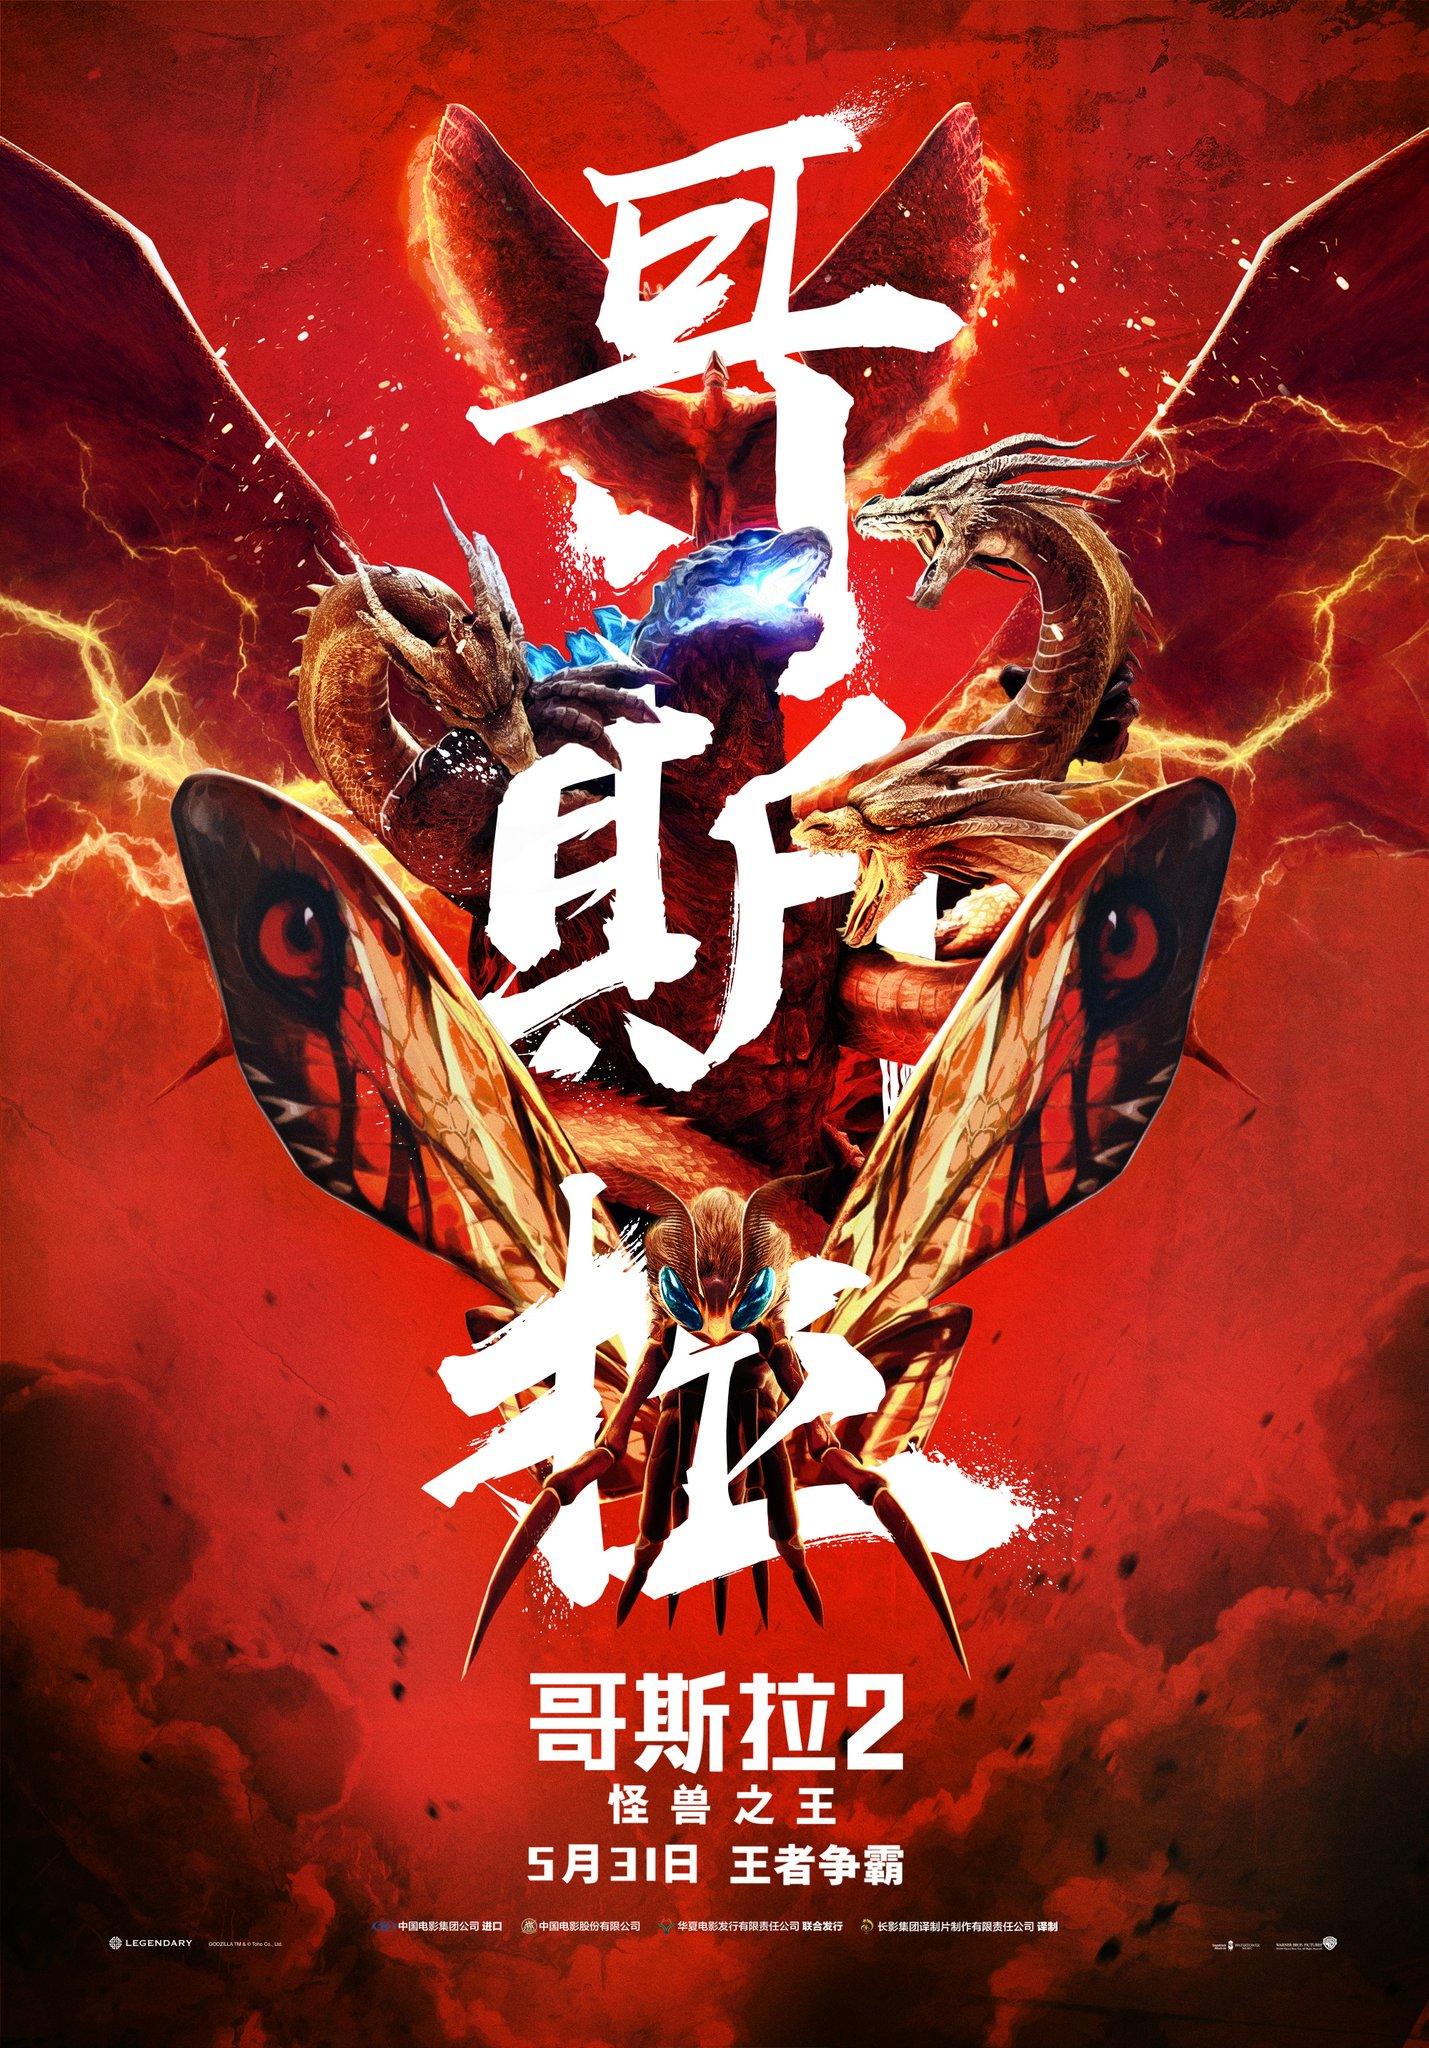 Godzilla King of the Monsters Chinese Poster Ghidorah Rodan Mothra